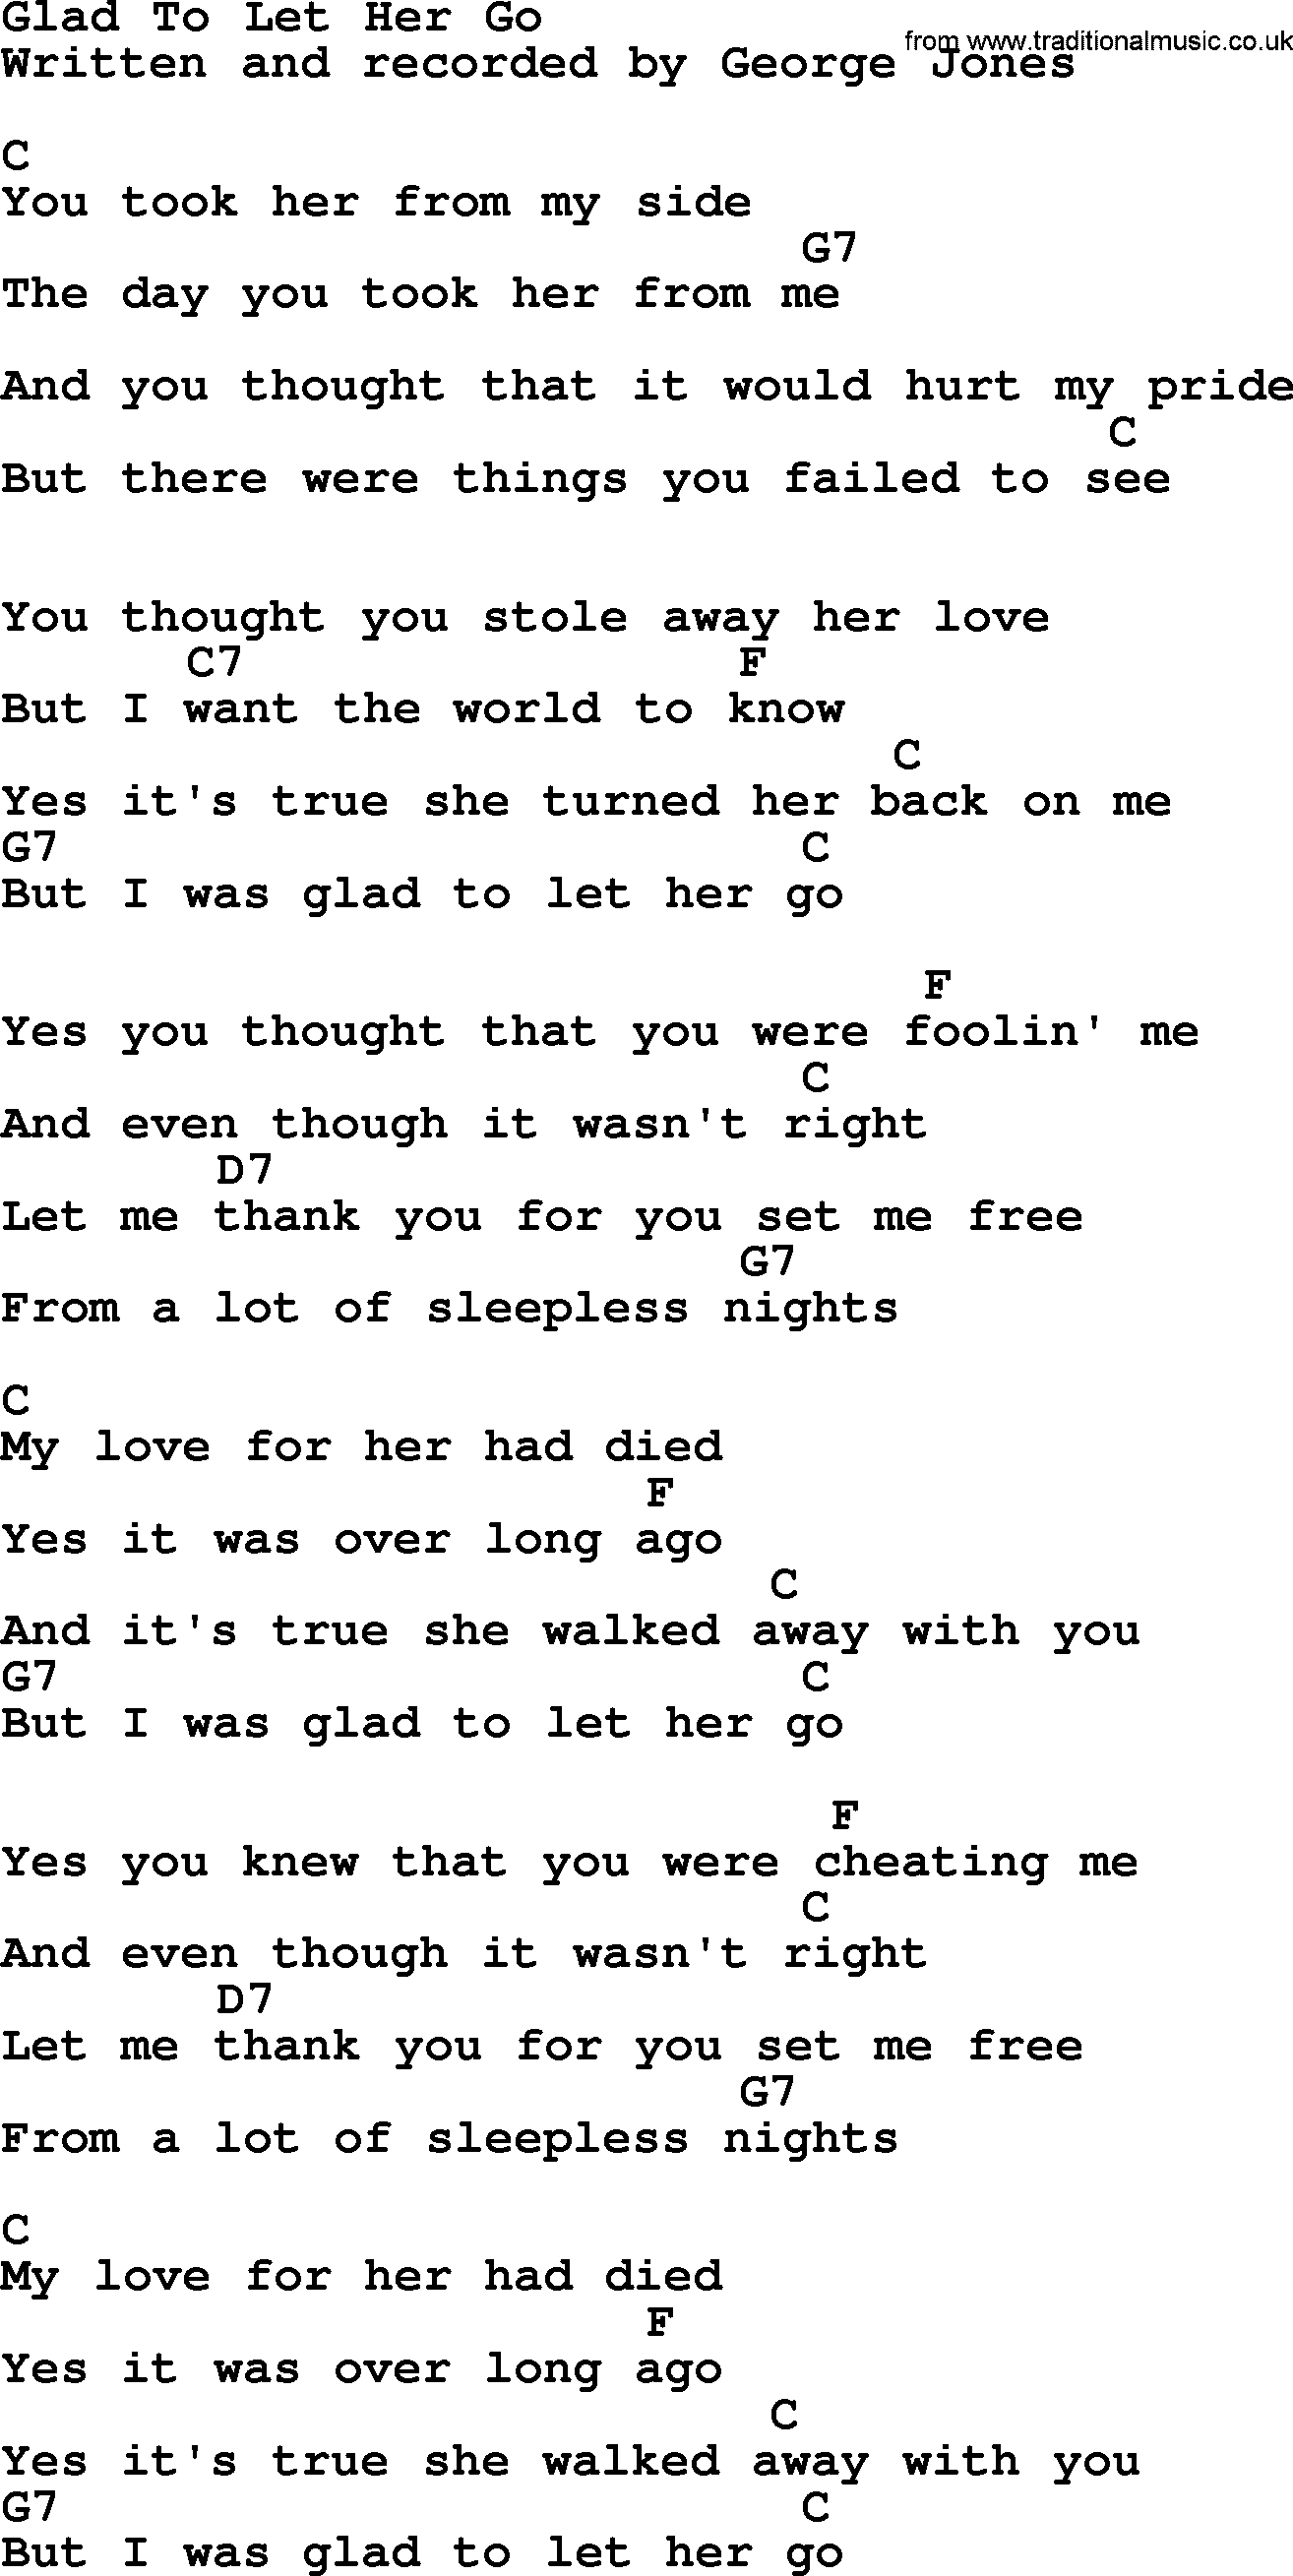 Guitar chords of let her go music sheets chords tablature and glad to let her go by george jones counrty song lyrics and chords hexwebz Images